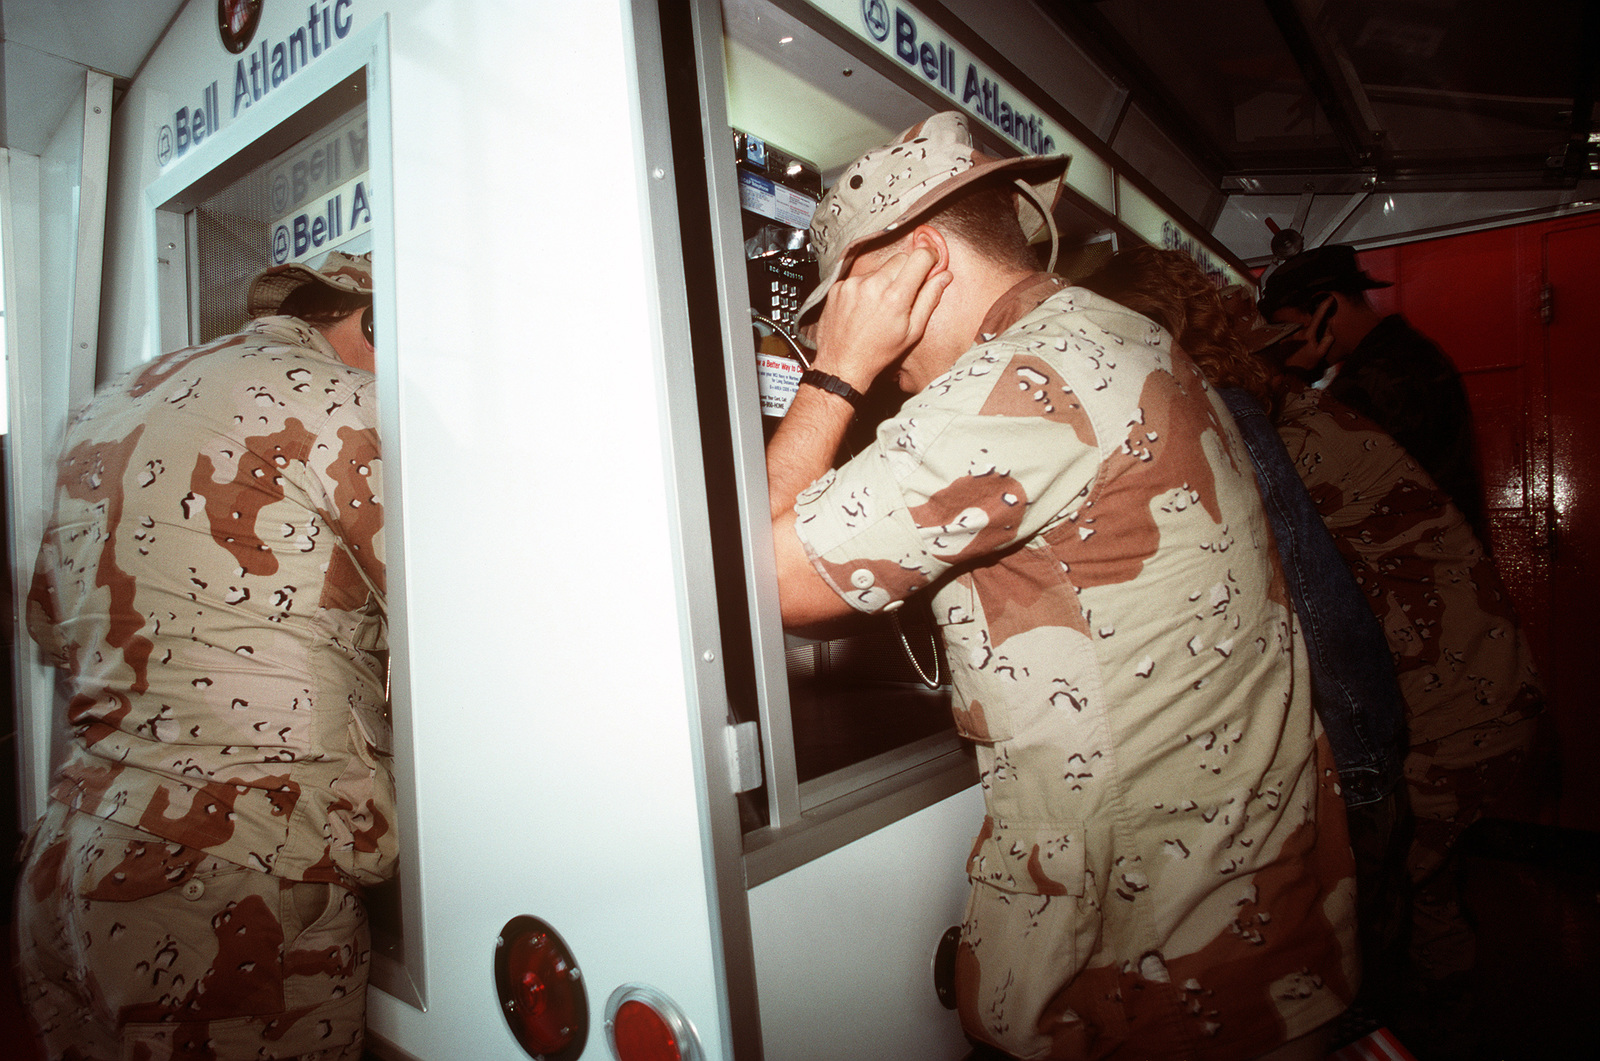 U.S. Navy beachmaster unit members telephone loved ones upon their arrival at Naval Air Station, Norfolk. The servicemen are returning from deployment in the Persian Gulf area during Operation Desert Storm